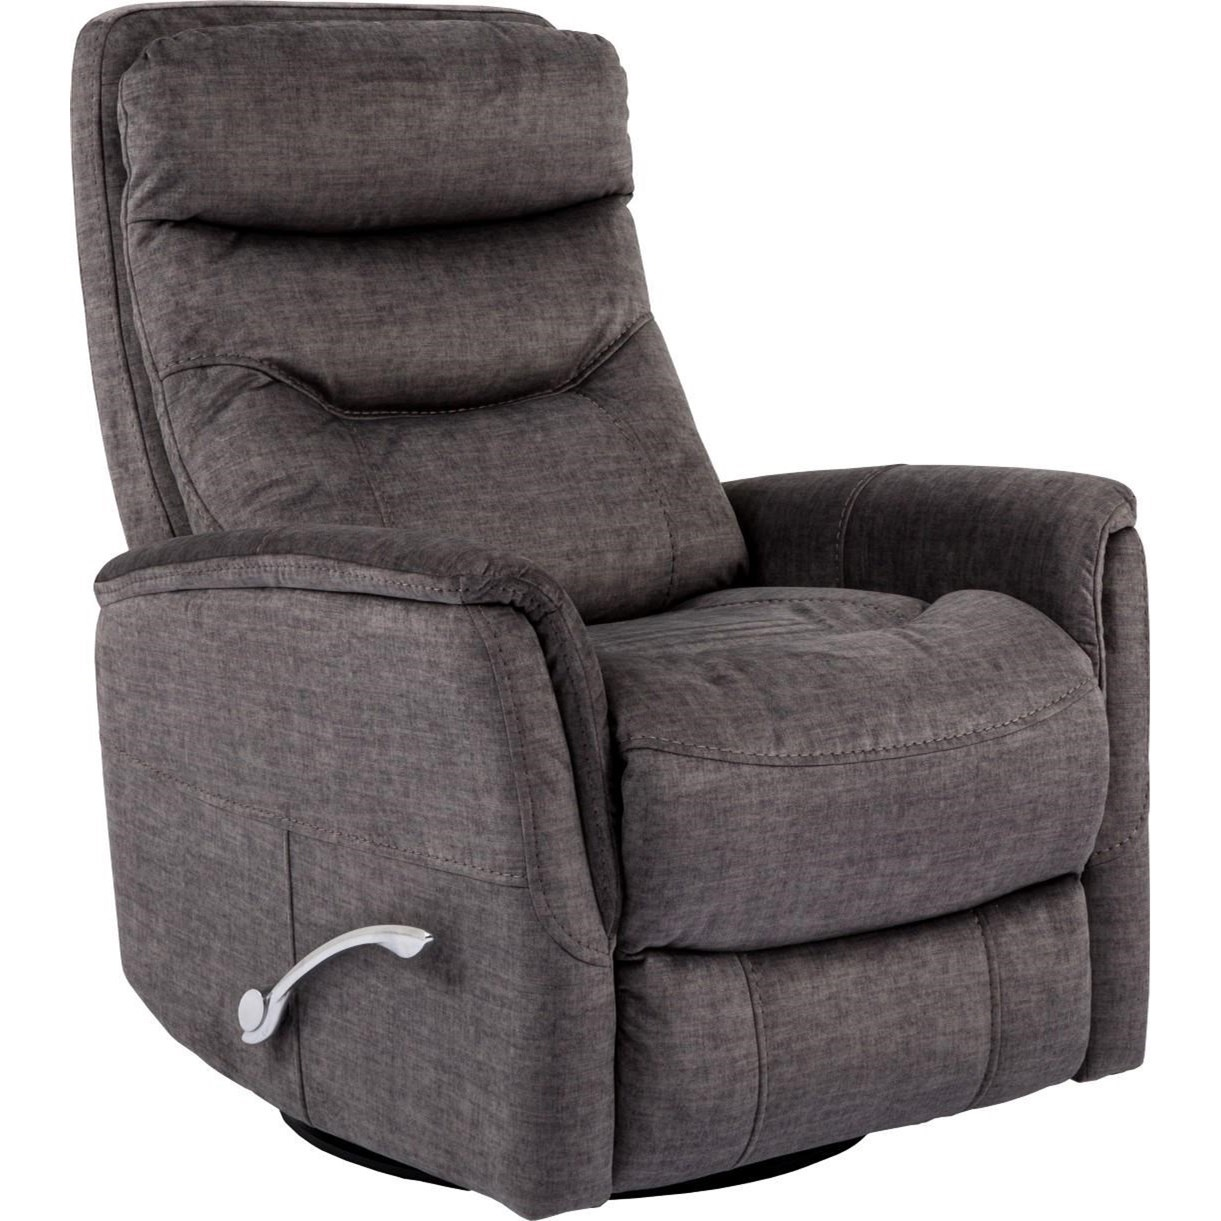 Gemini Swivel Glider Recliner by Parker Living at Zak's Warehouse Clearance Center